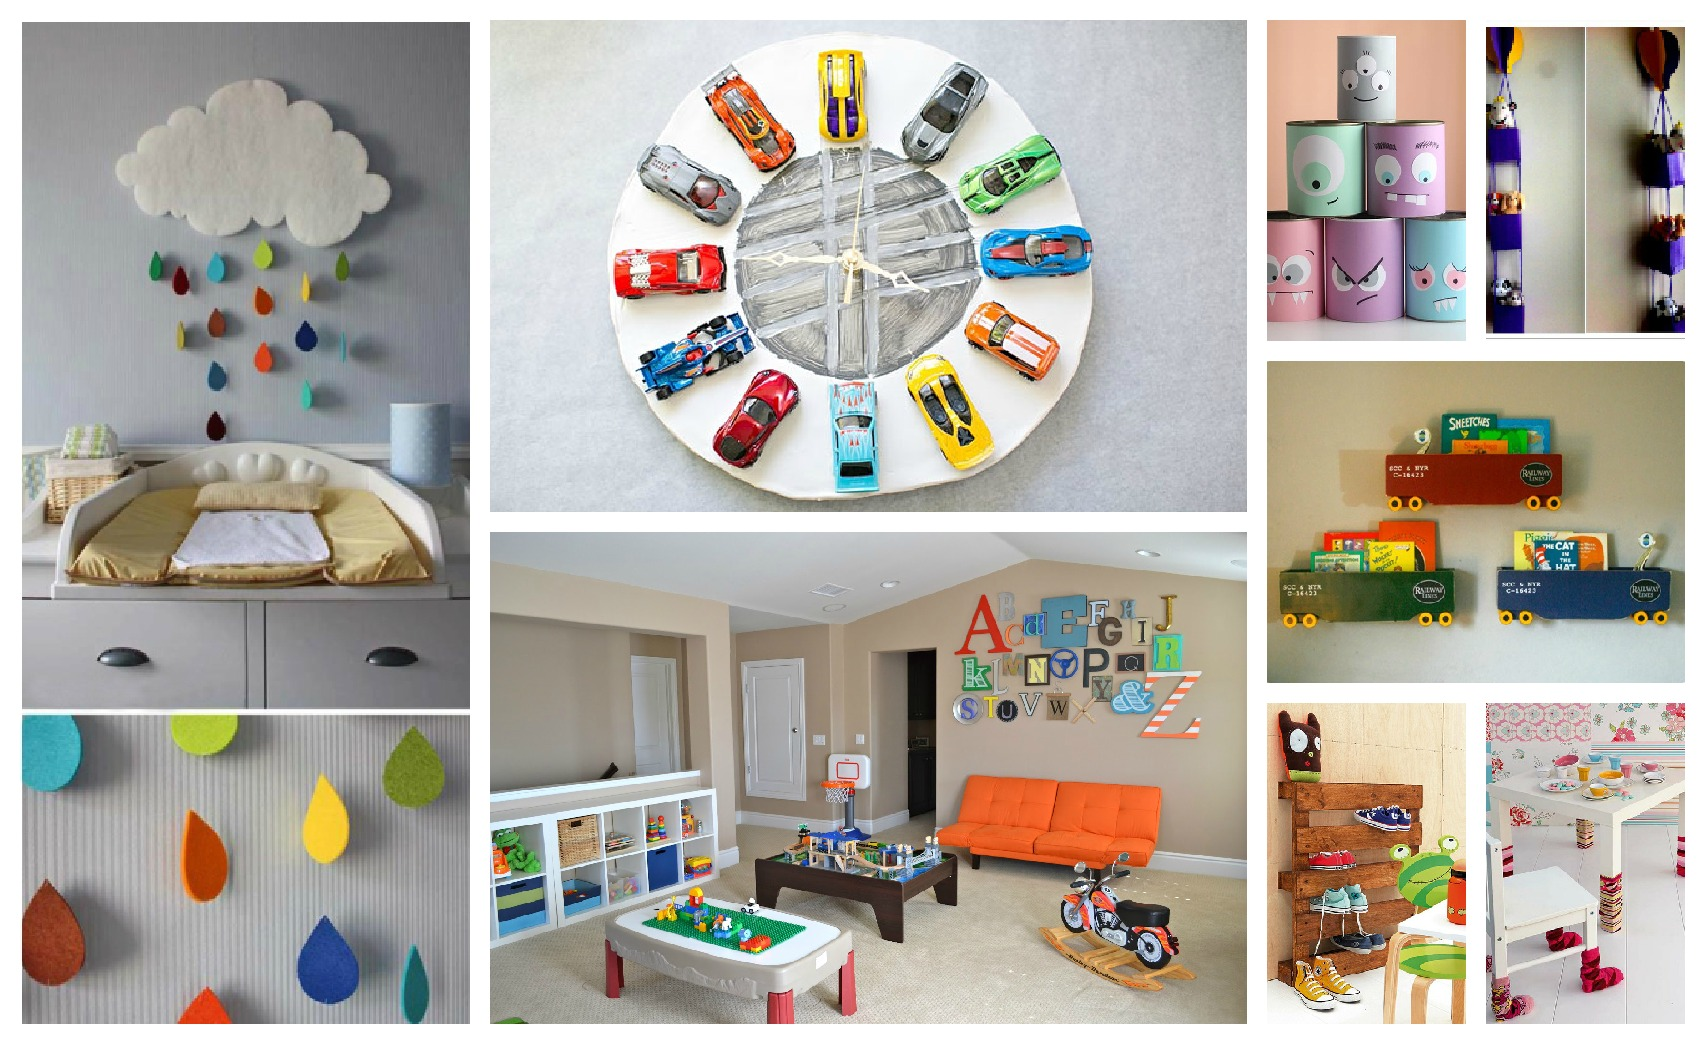 Cheerful Kids Room Decorations That You Will Fall In Love With